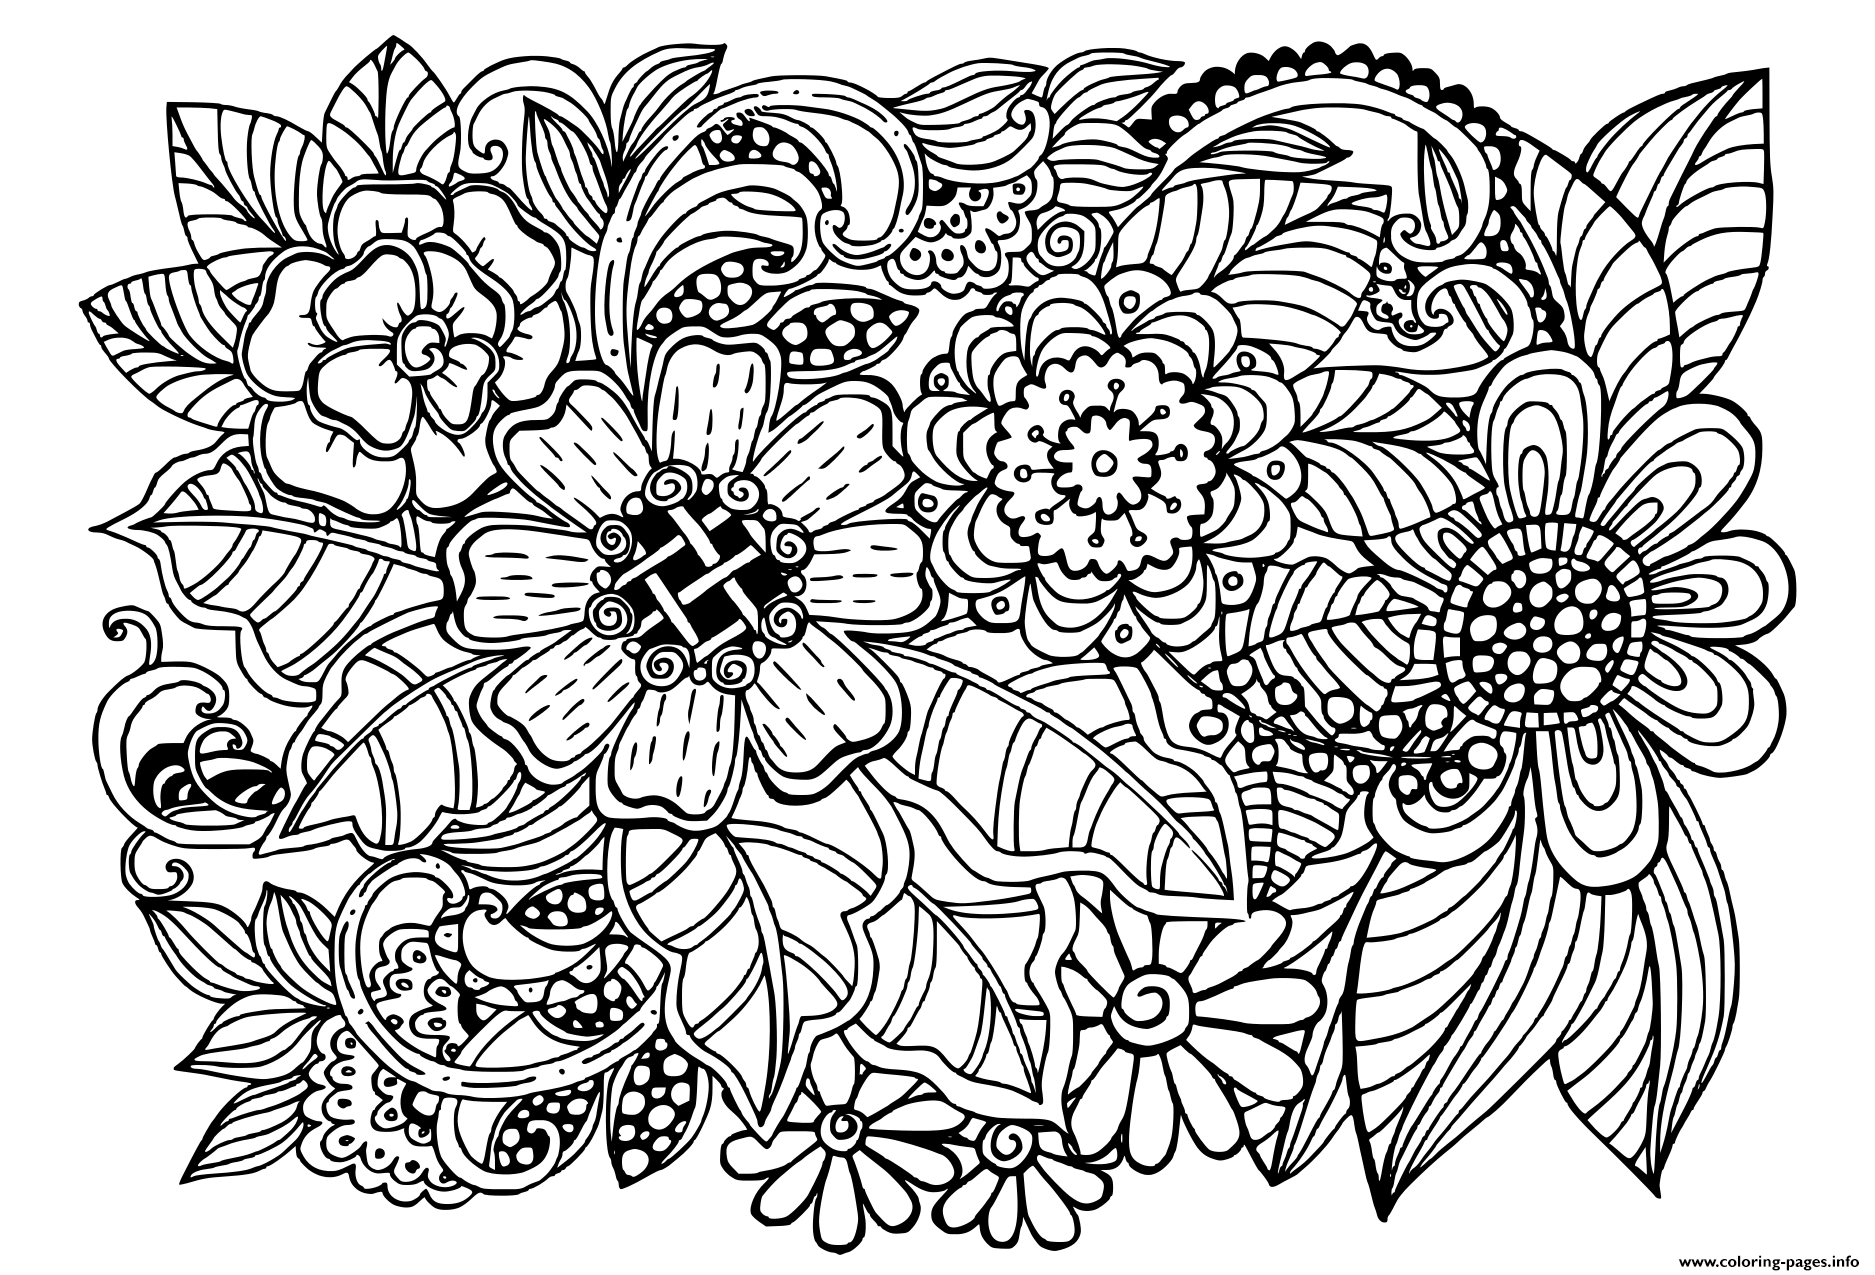 coloring patterns paisley pattern coloring page free printable coloring pages coloring patterns